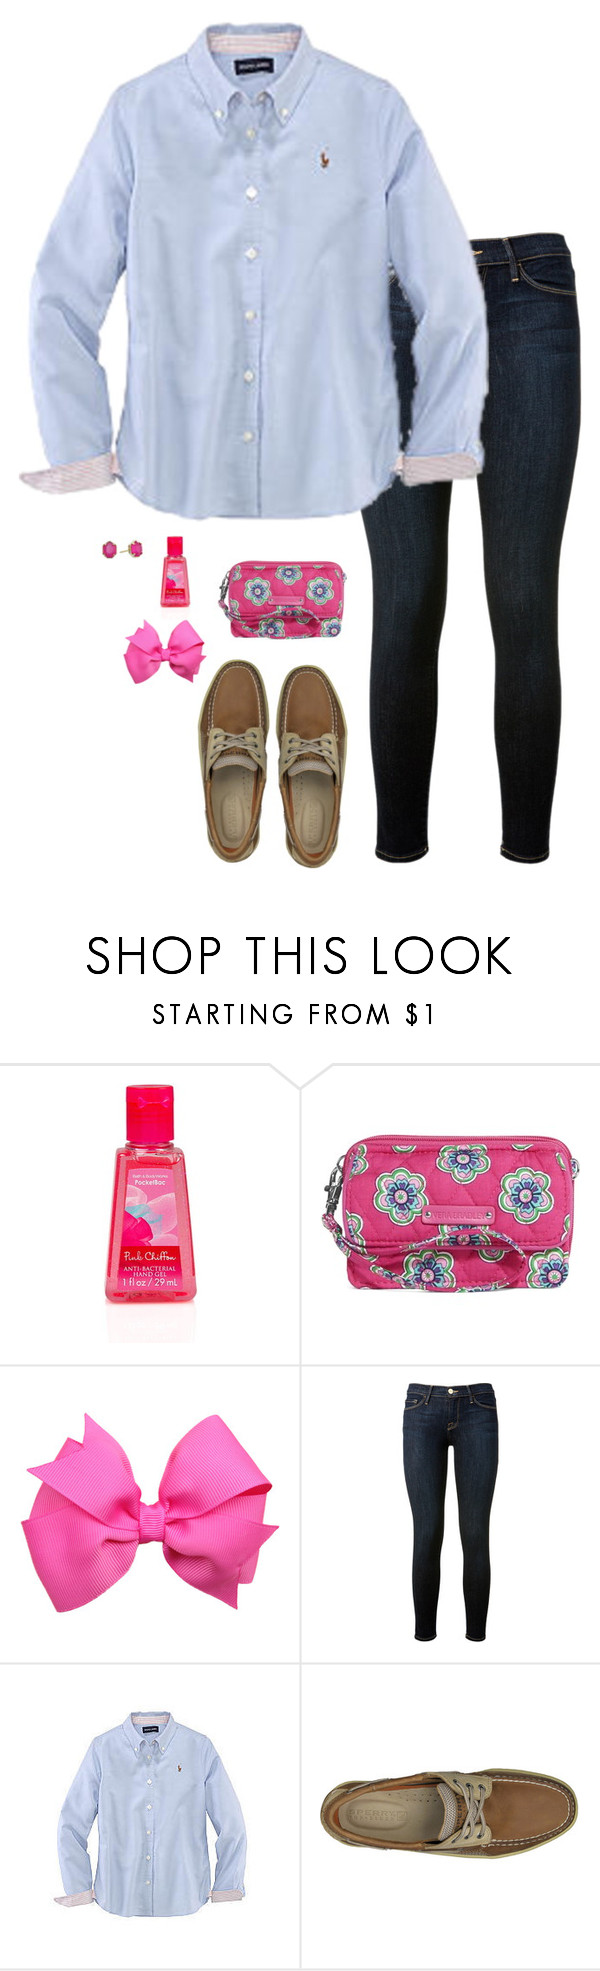 """""""Did your team win today?"""" by sc-prep-girl ❤ liked on Polyvore featuring Vera Bradley, Frame Denim, Ralph Lauren, Sperry Top-Sider and Kendra Scott"""